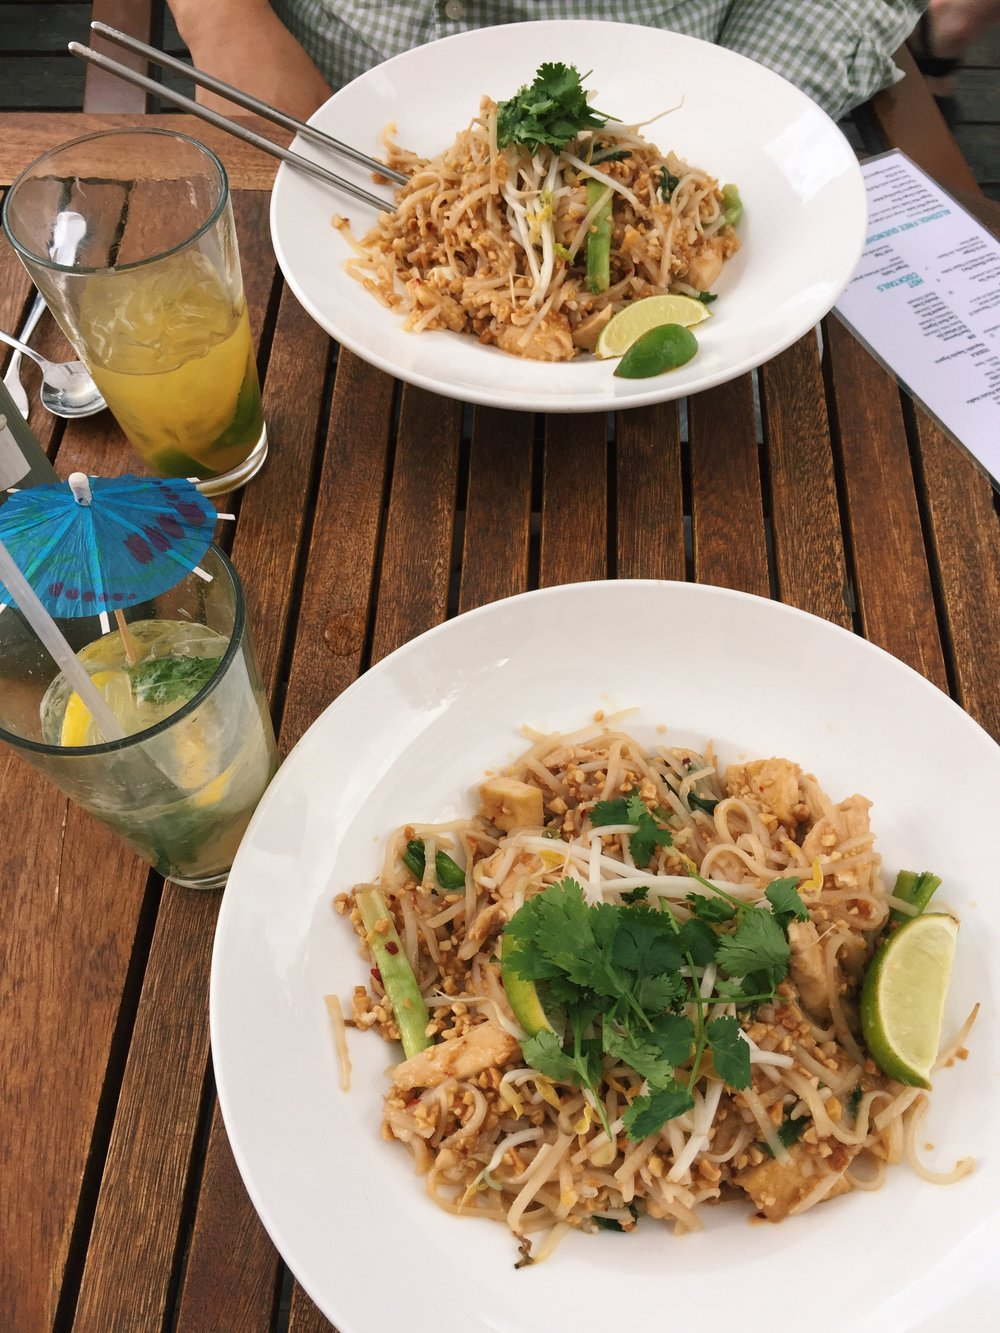 Chicken Pad Thai that I'm still drooling over